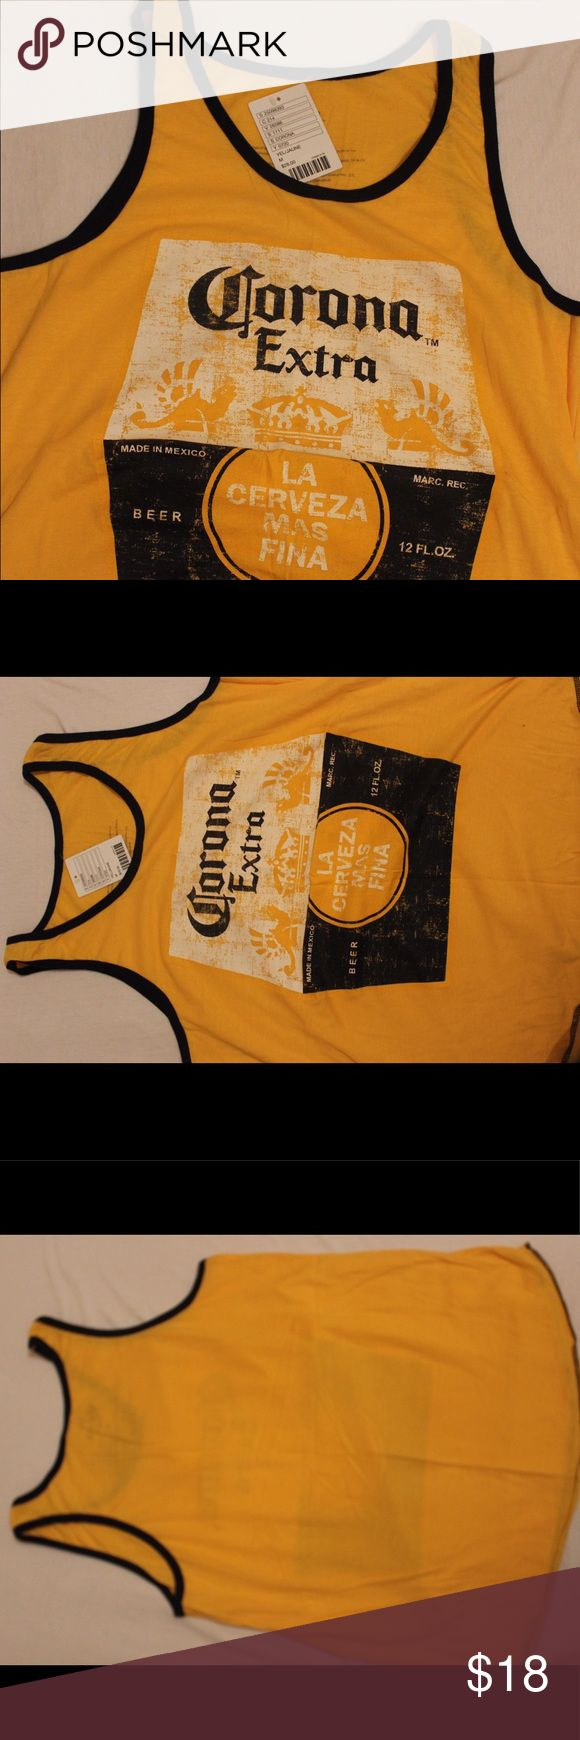 La corona más fina beach tank This was bought at urban outfitters but never worn is a great beach tank. Design is corona beer it's NWT and not asking for the original price Urban Outfitters Shirts Tank Tops